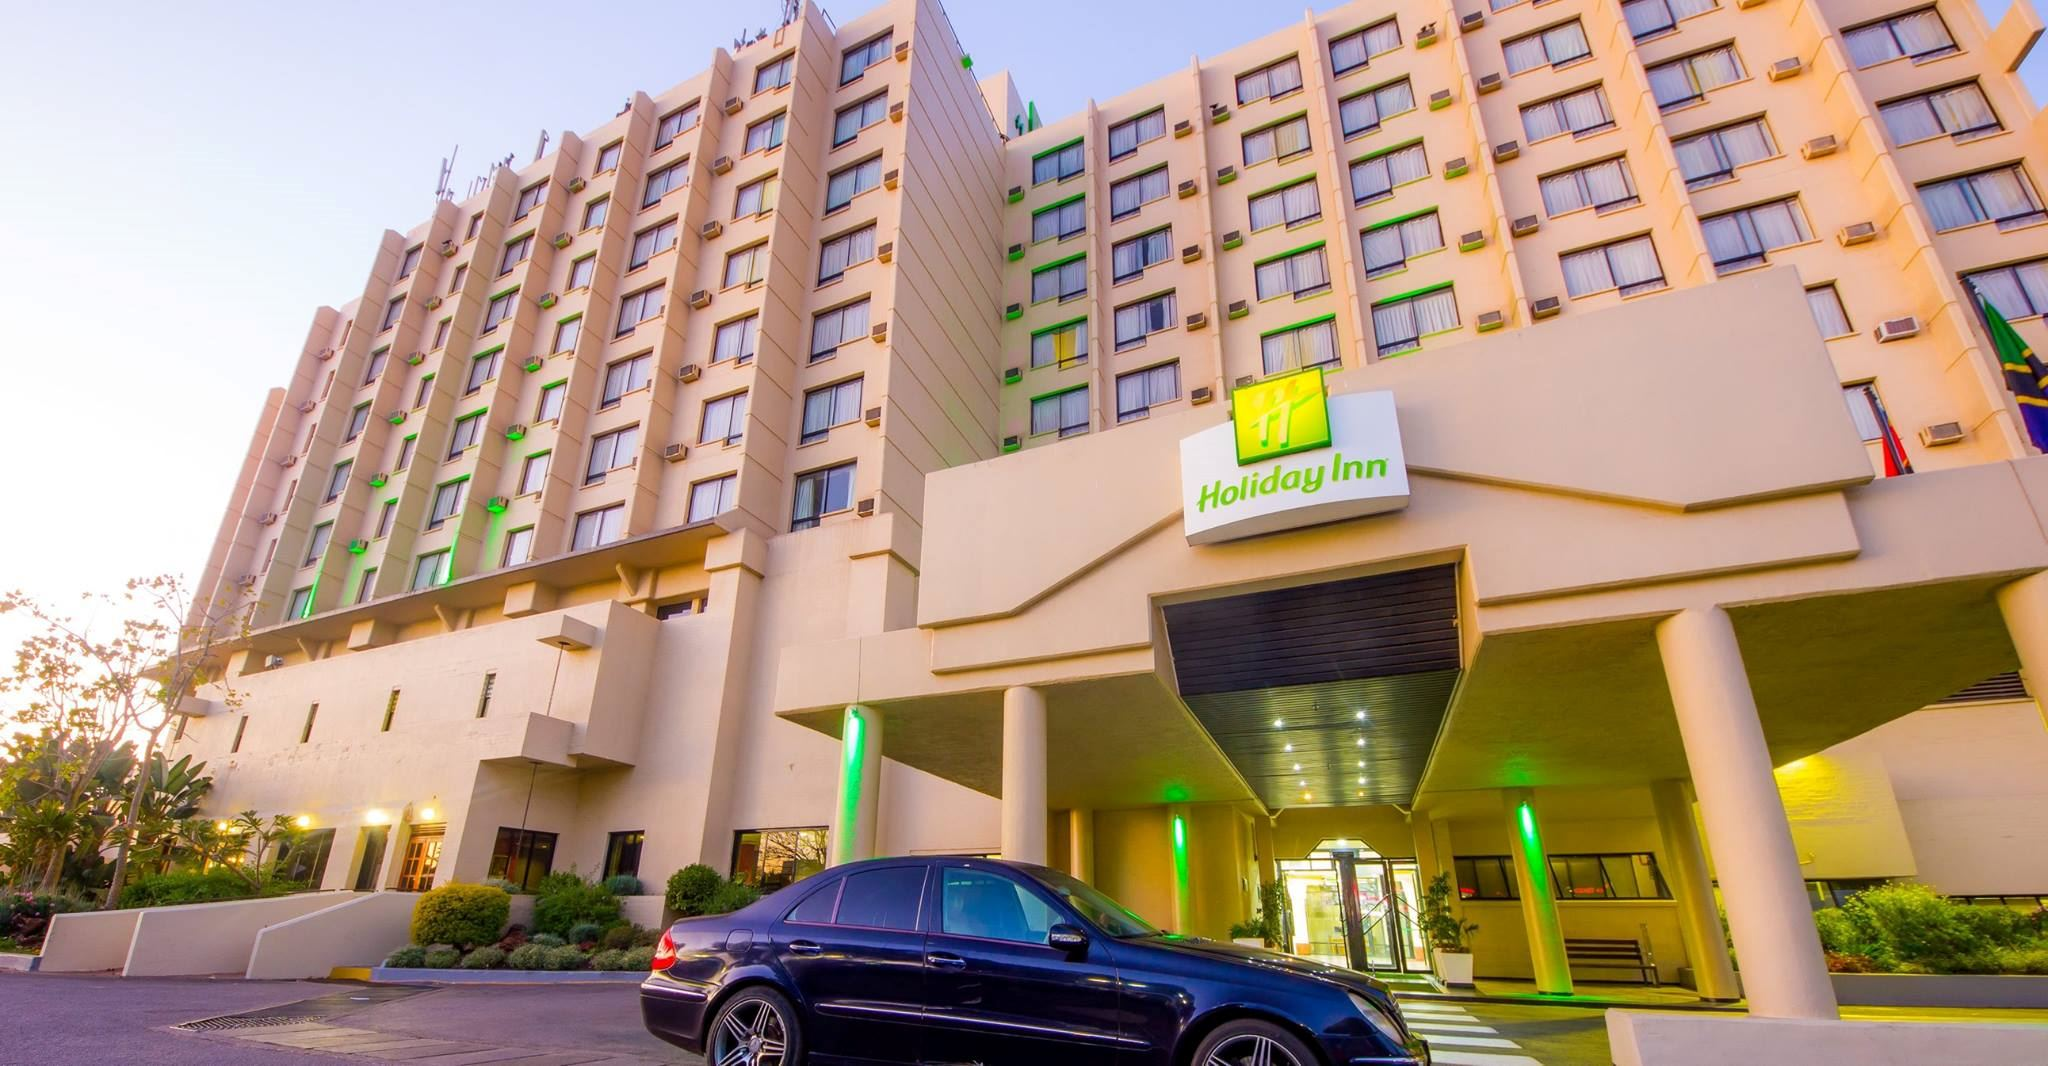 Holiday Inn Harare - 2